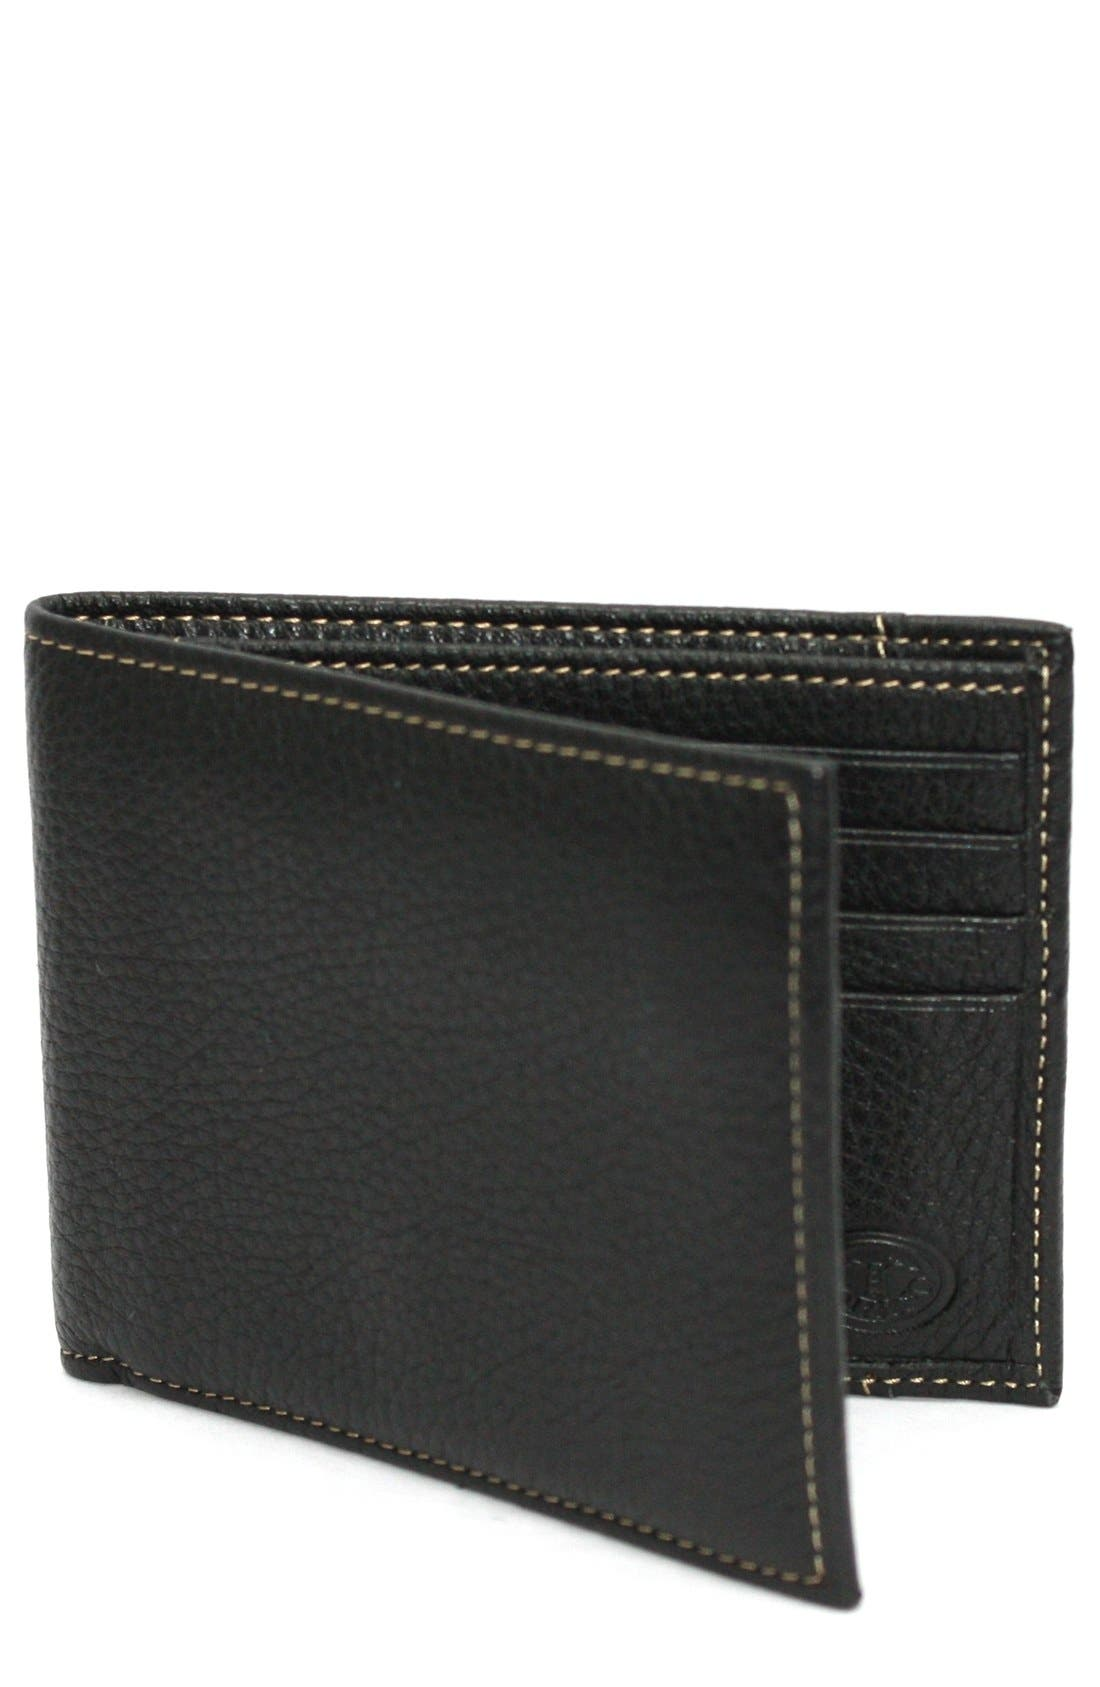 Leather Billfold Wallet,                         Main,                         color, BLACK